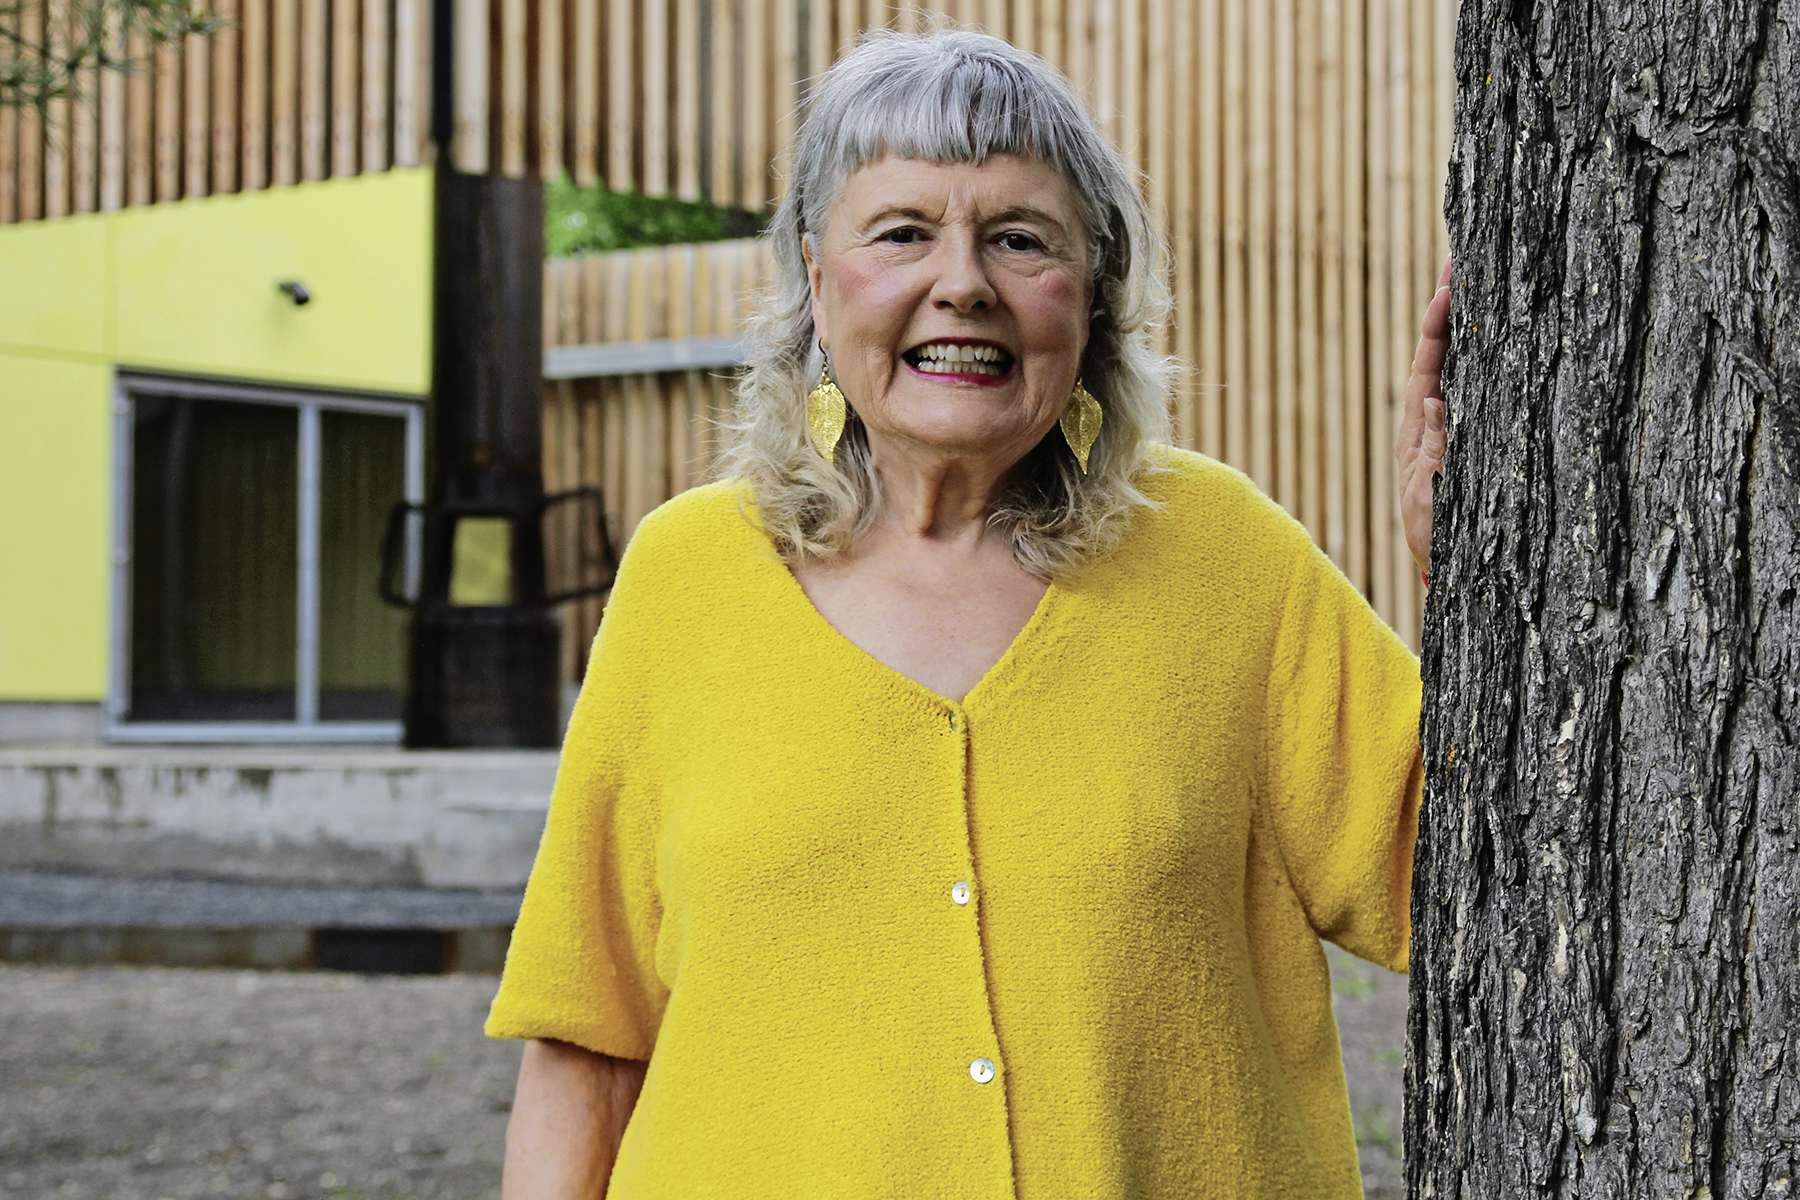 Muriel St. John advocates for parkland through the groups OURS-Winnipeg and Crescent Park Rescue Committee. St. John wants city council to vote no to the possible future development of Winnipeg's green spaces outlined in the OurWinnipeg 2045 Development Plan.